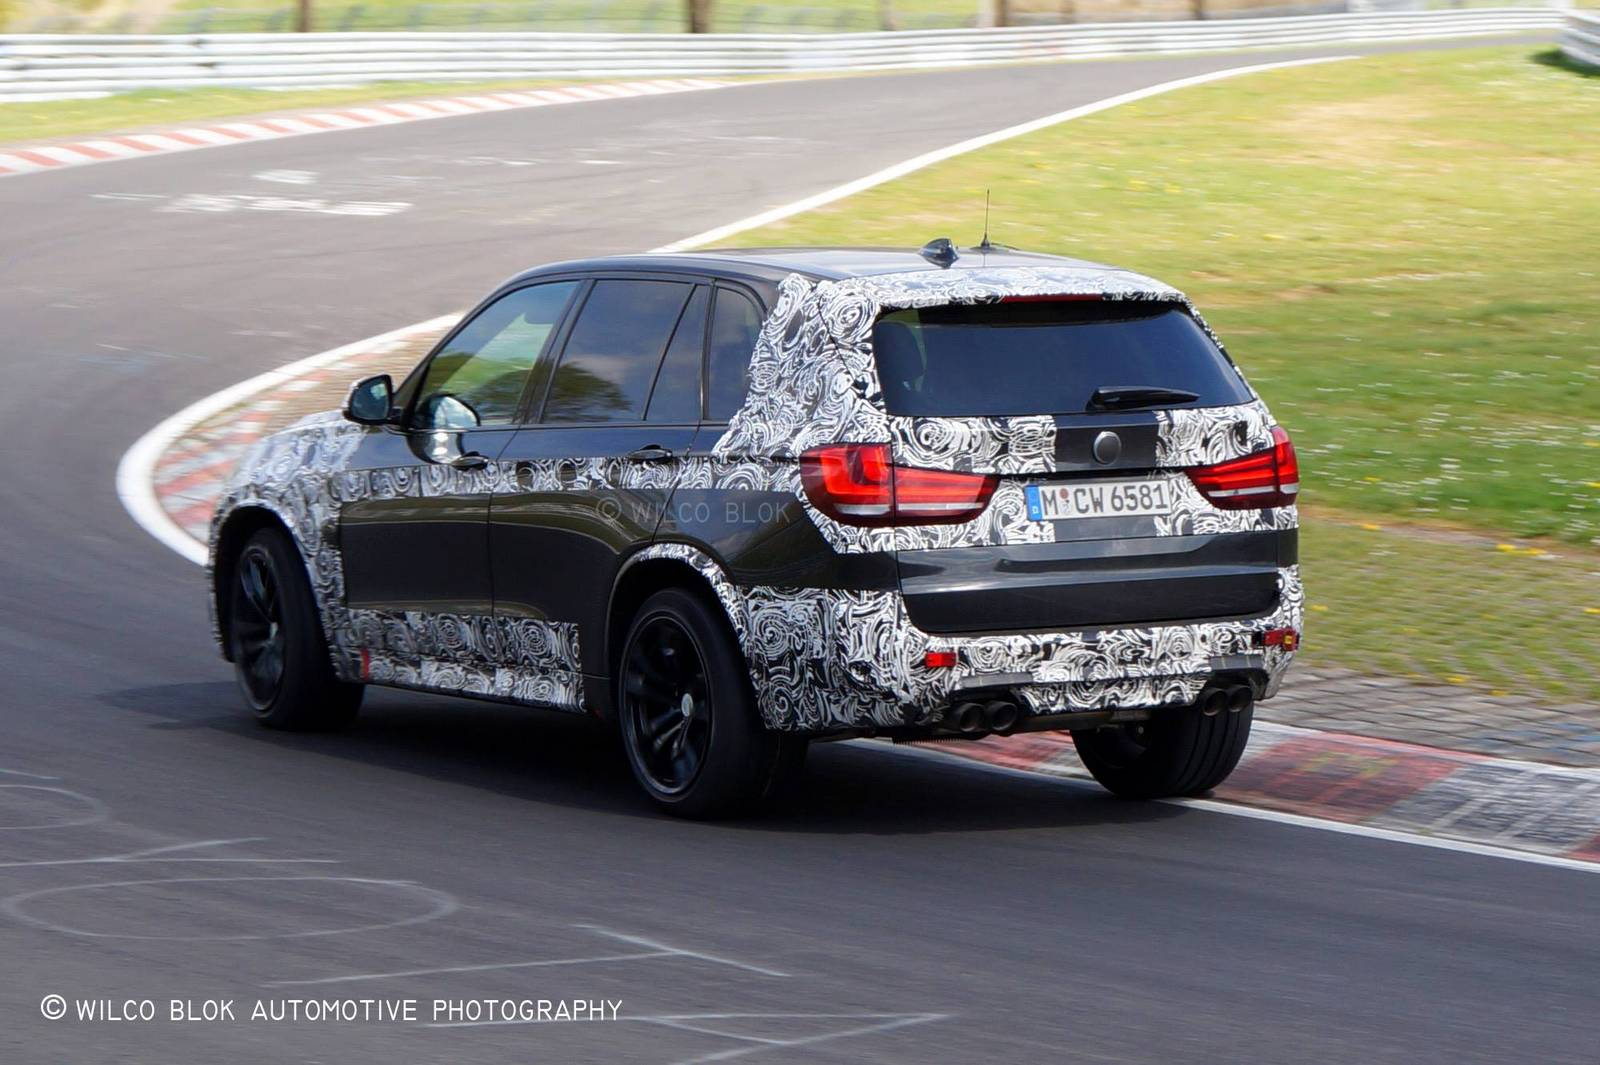 2015 bmw x5m spotted with less camo at the n rburgring gtspirit. Black Bedroom Furniture Sets. Home Design Ideas